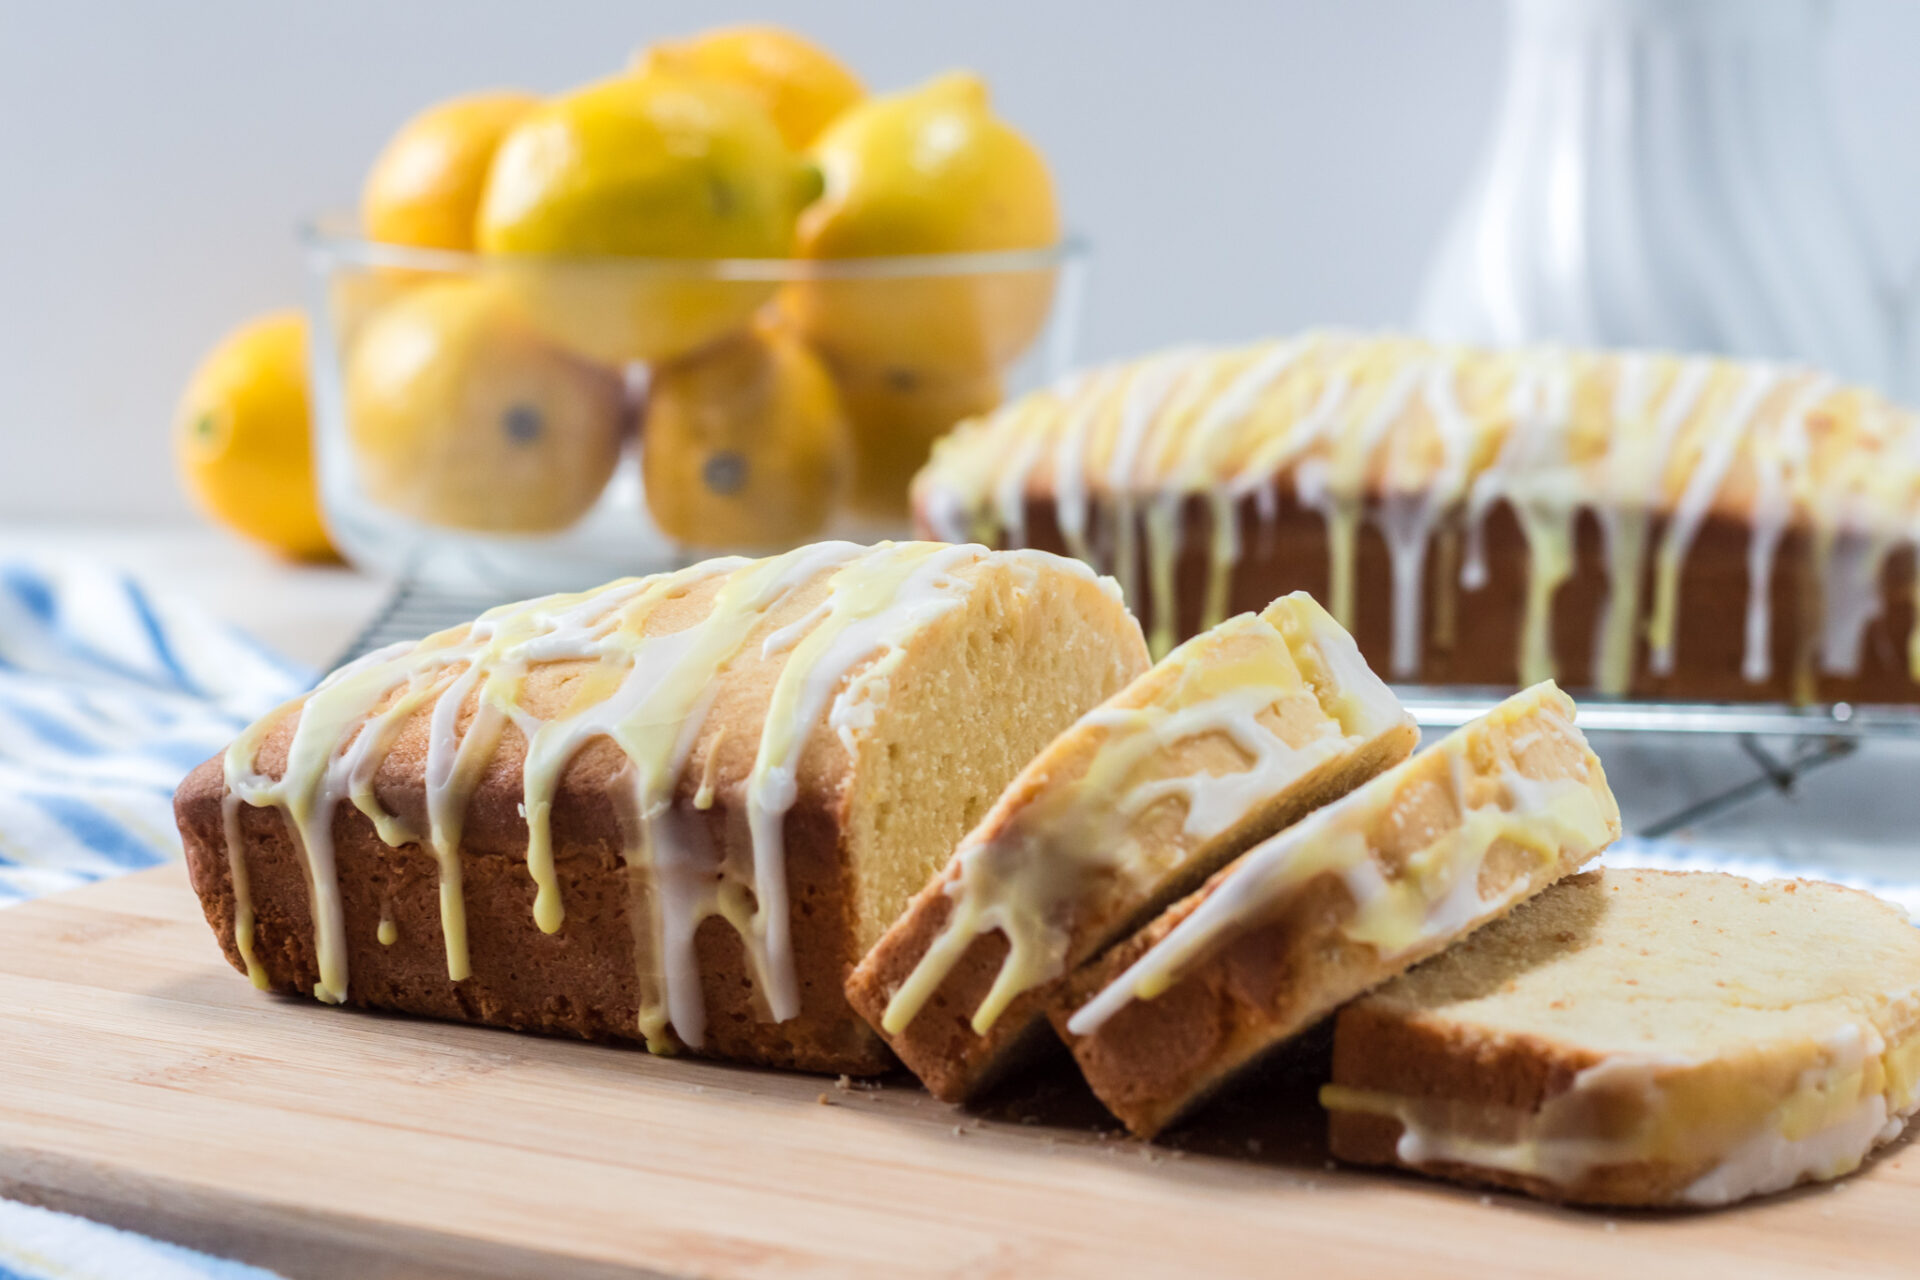 Your tastebuds will be singing when you taste this delicious Lemon Loaf! This super moist load is packed with lemon flavor and topped with a delicious sweet icing.